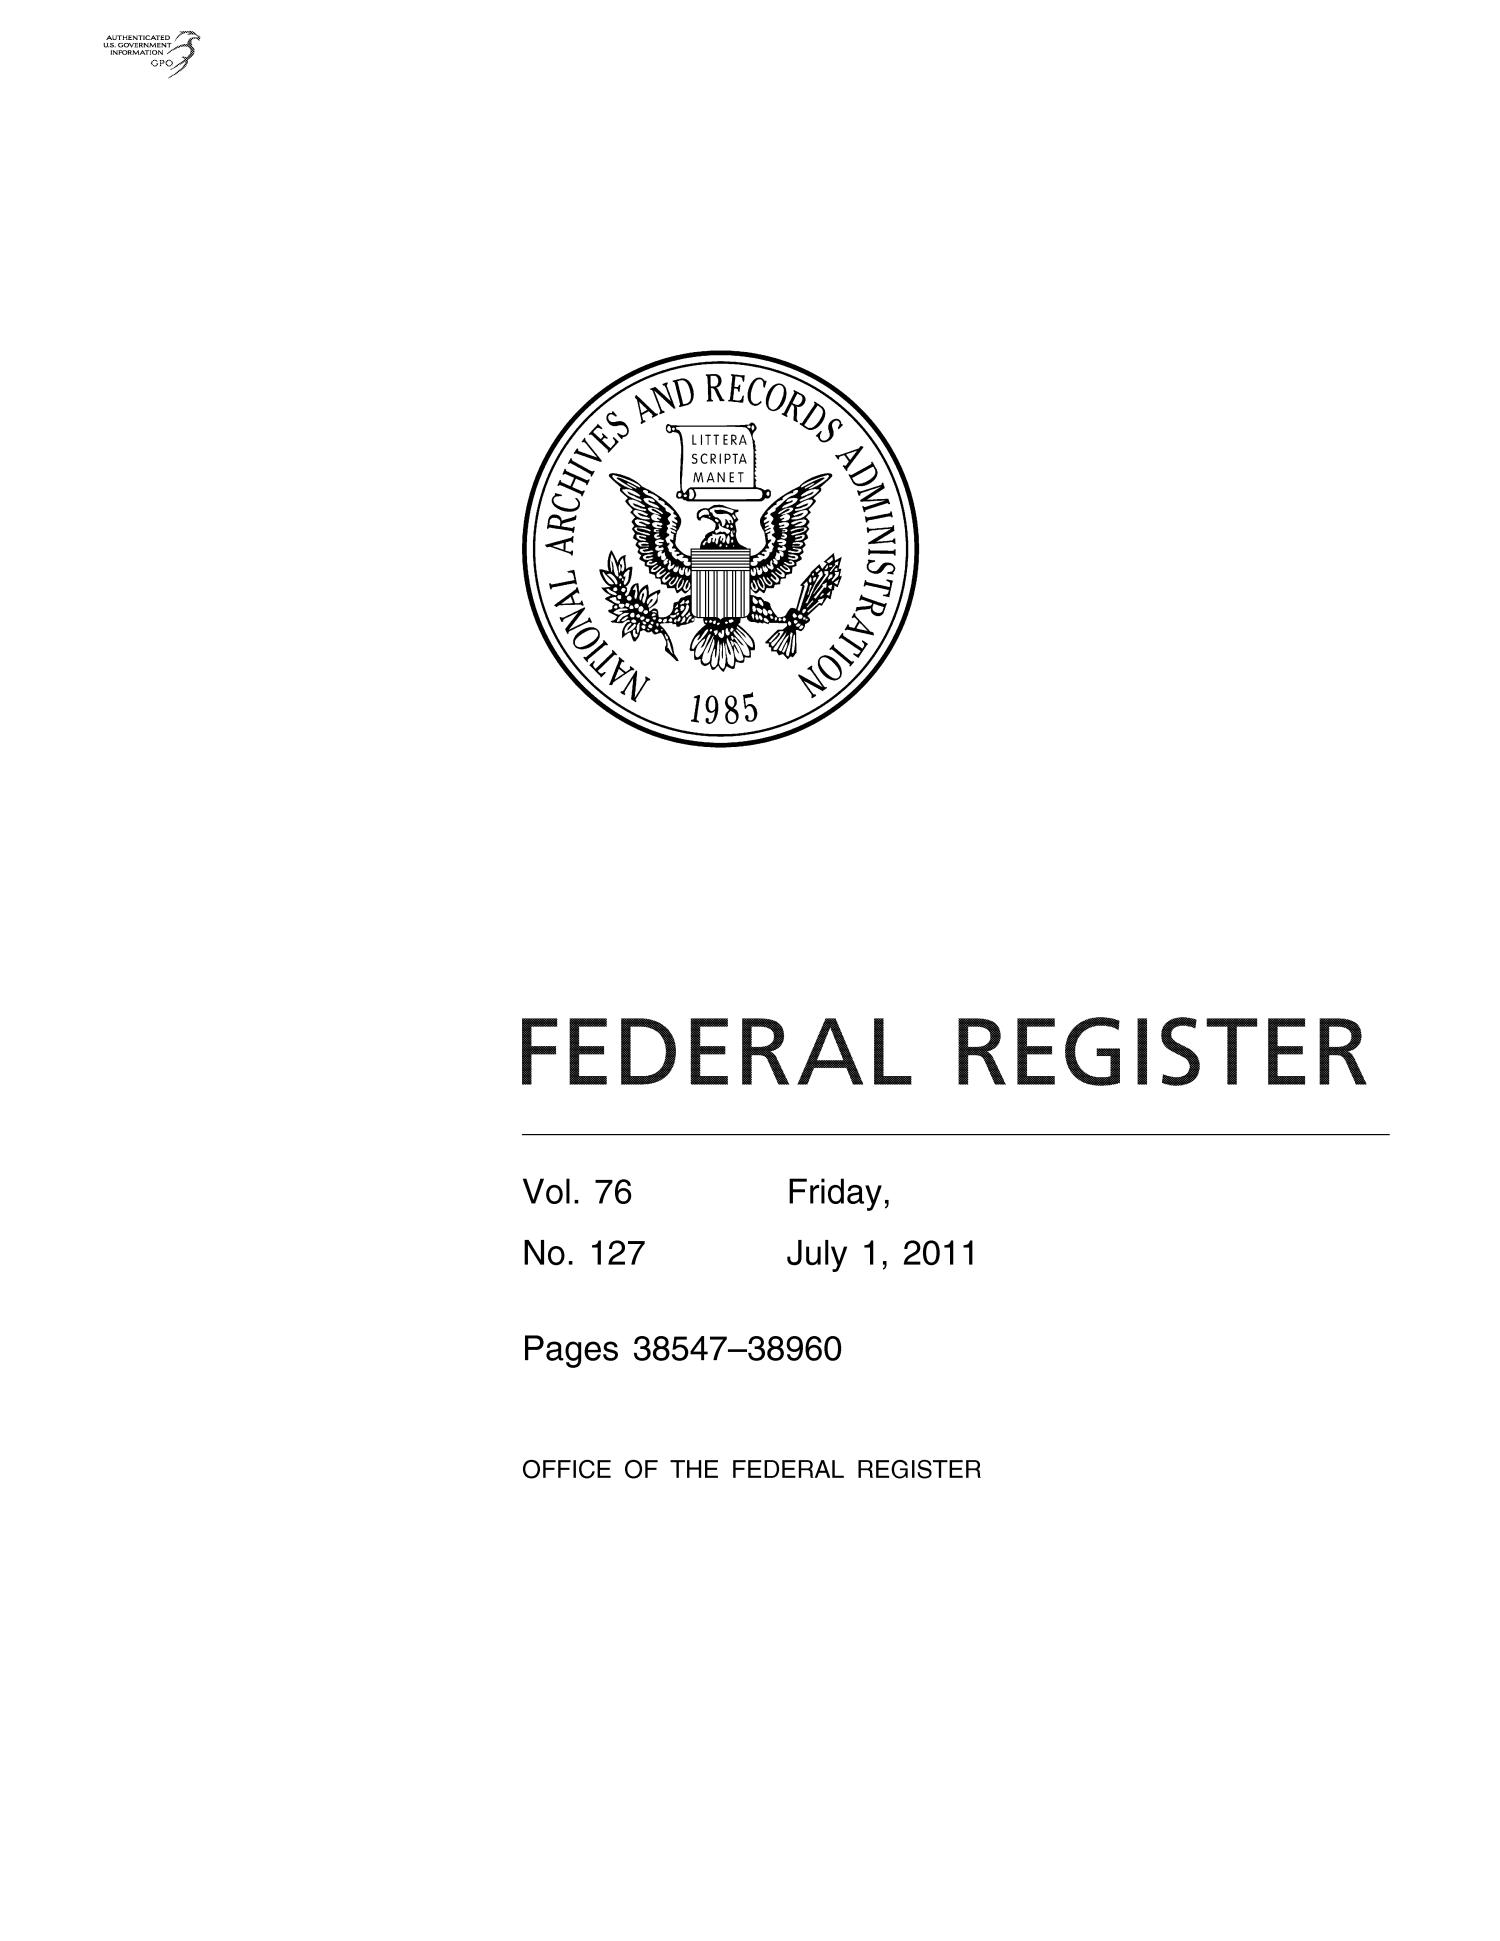 Federal Register, Volume 76, Number 127, July 1, 2011